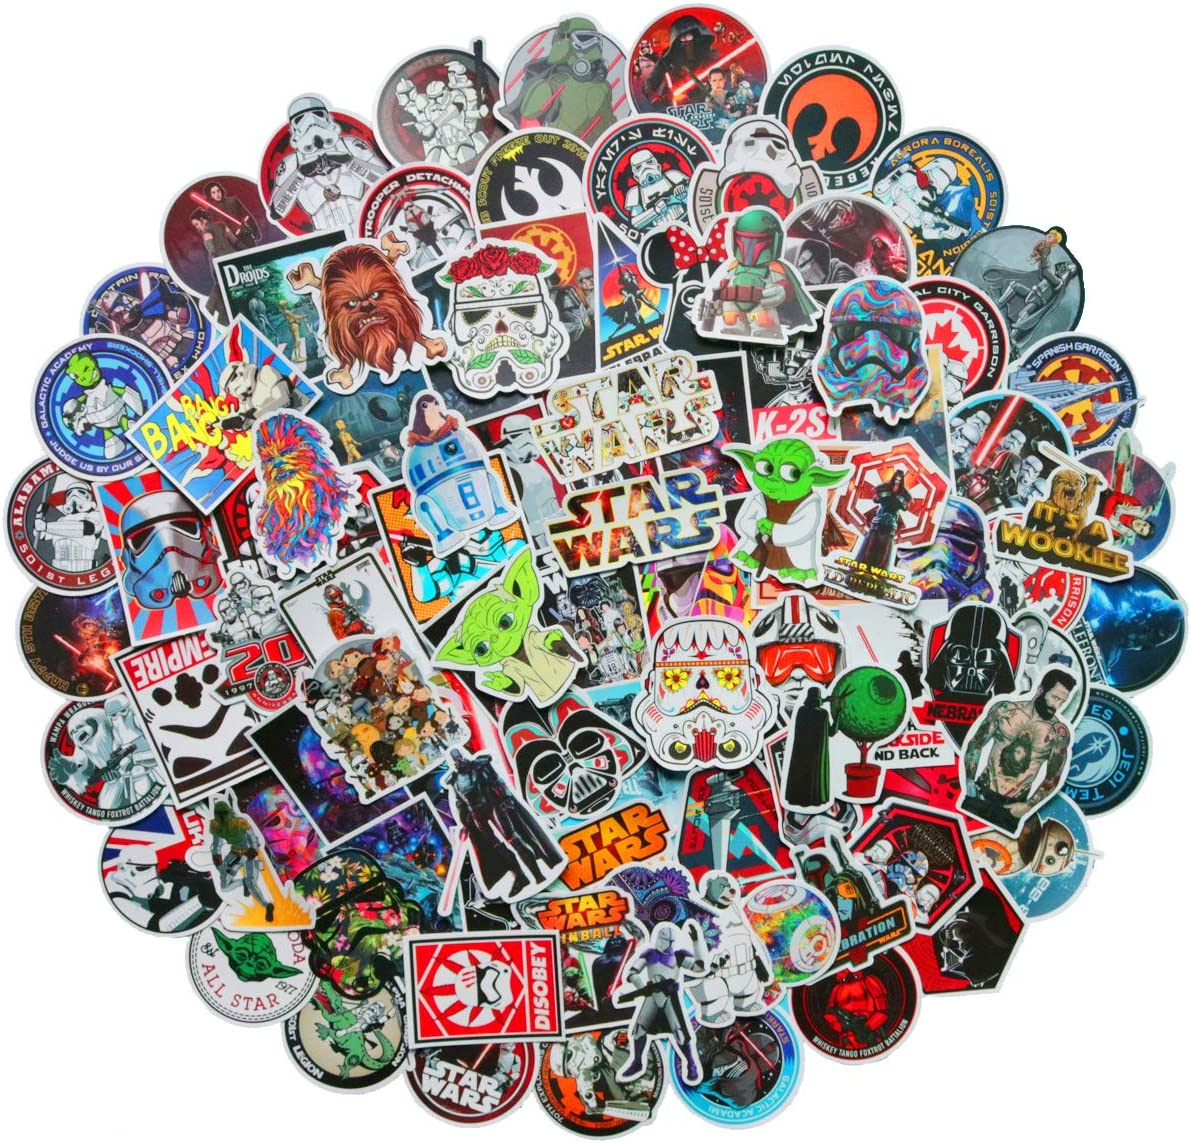 100 PCS Star Wars Stickers for Laptop Water Bottle Luggage Snowboard Bicycle Skateboard Decal for Kids Teens Adult Waterproof Aesthetic Stickers